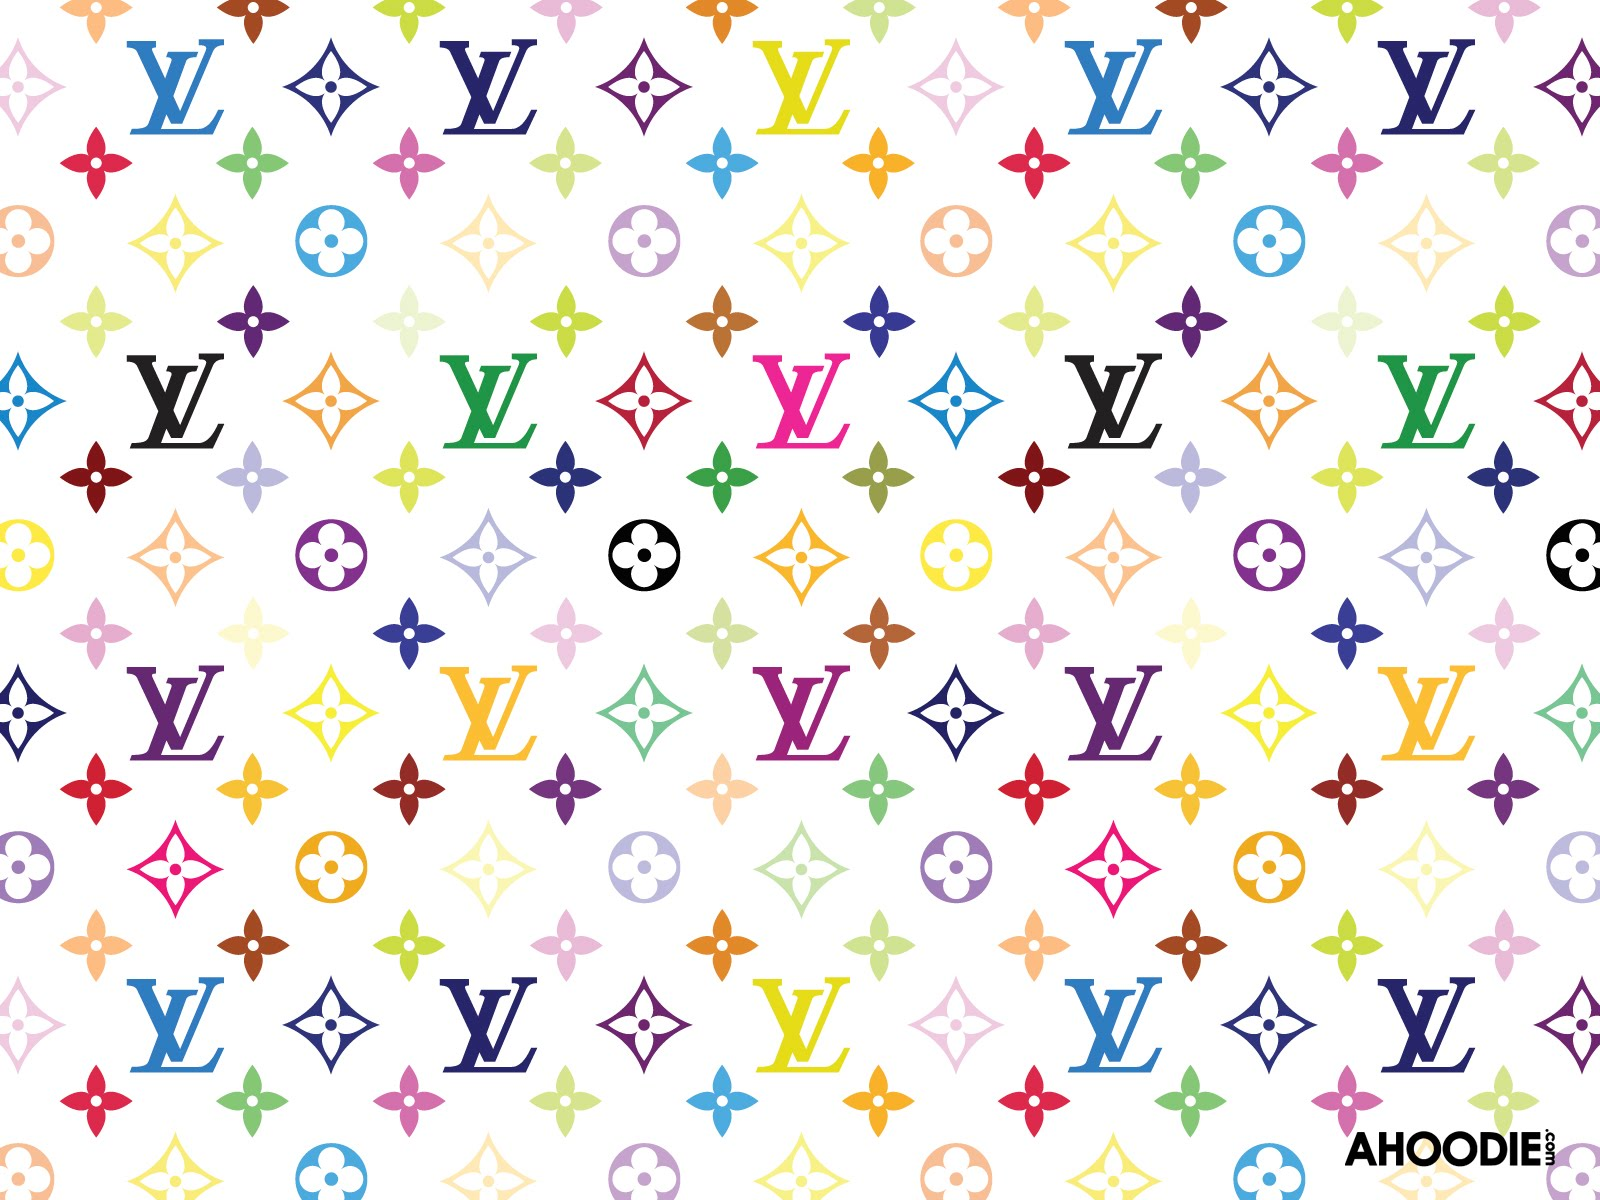 Louis Vuitton Wallpaper and Background Image | 1600x1200 | ID:820961 - Wallpaper Abyss